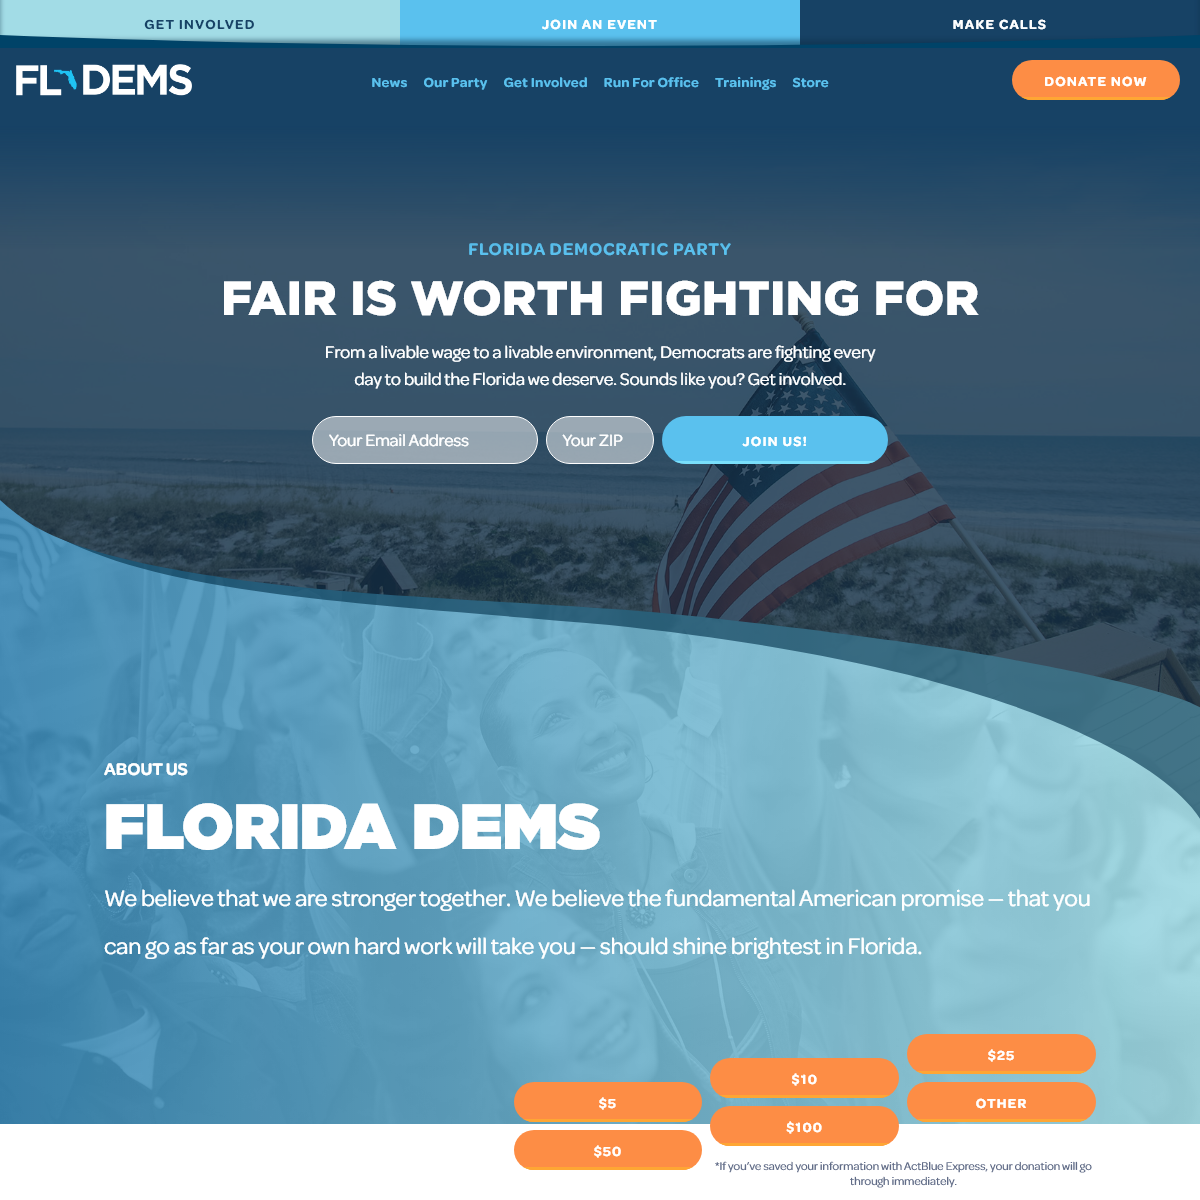 Florida Democratic Party - Fair is Worth Fighting For